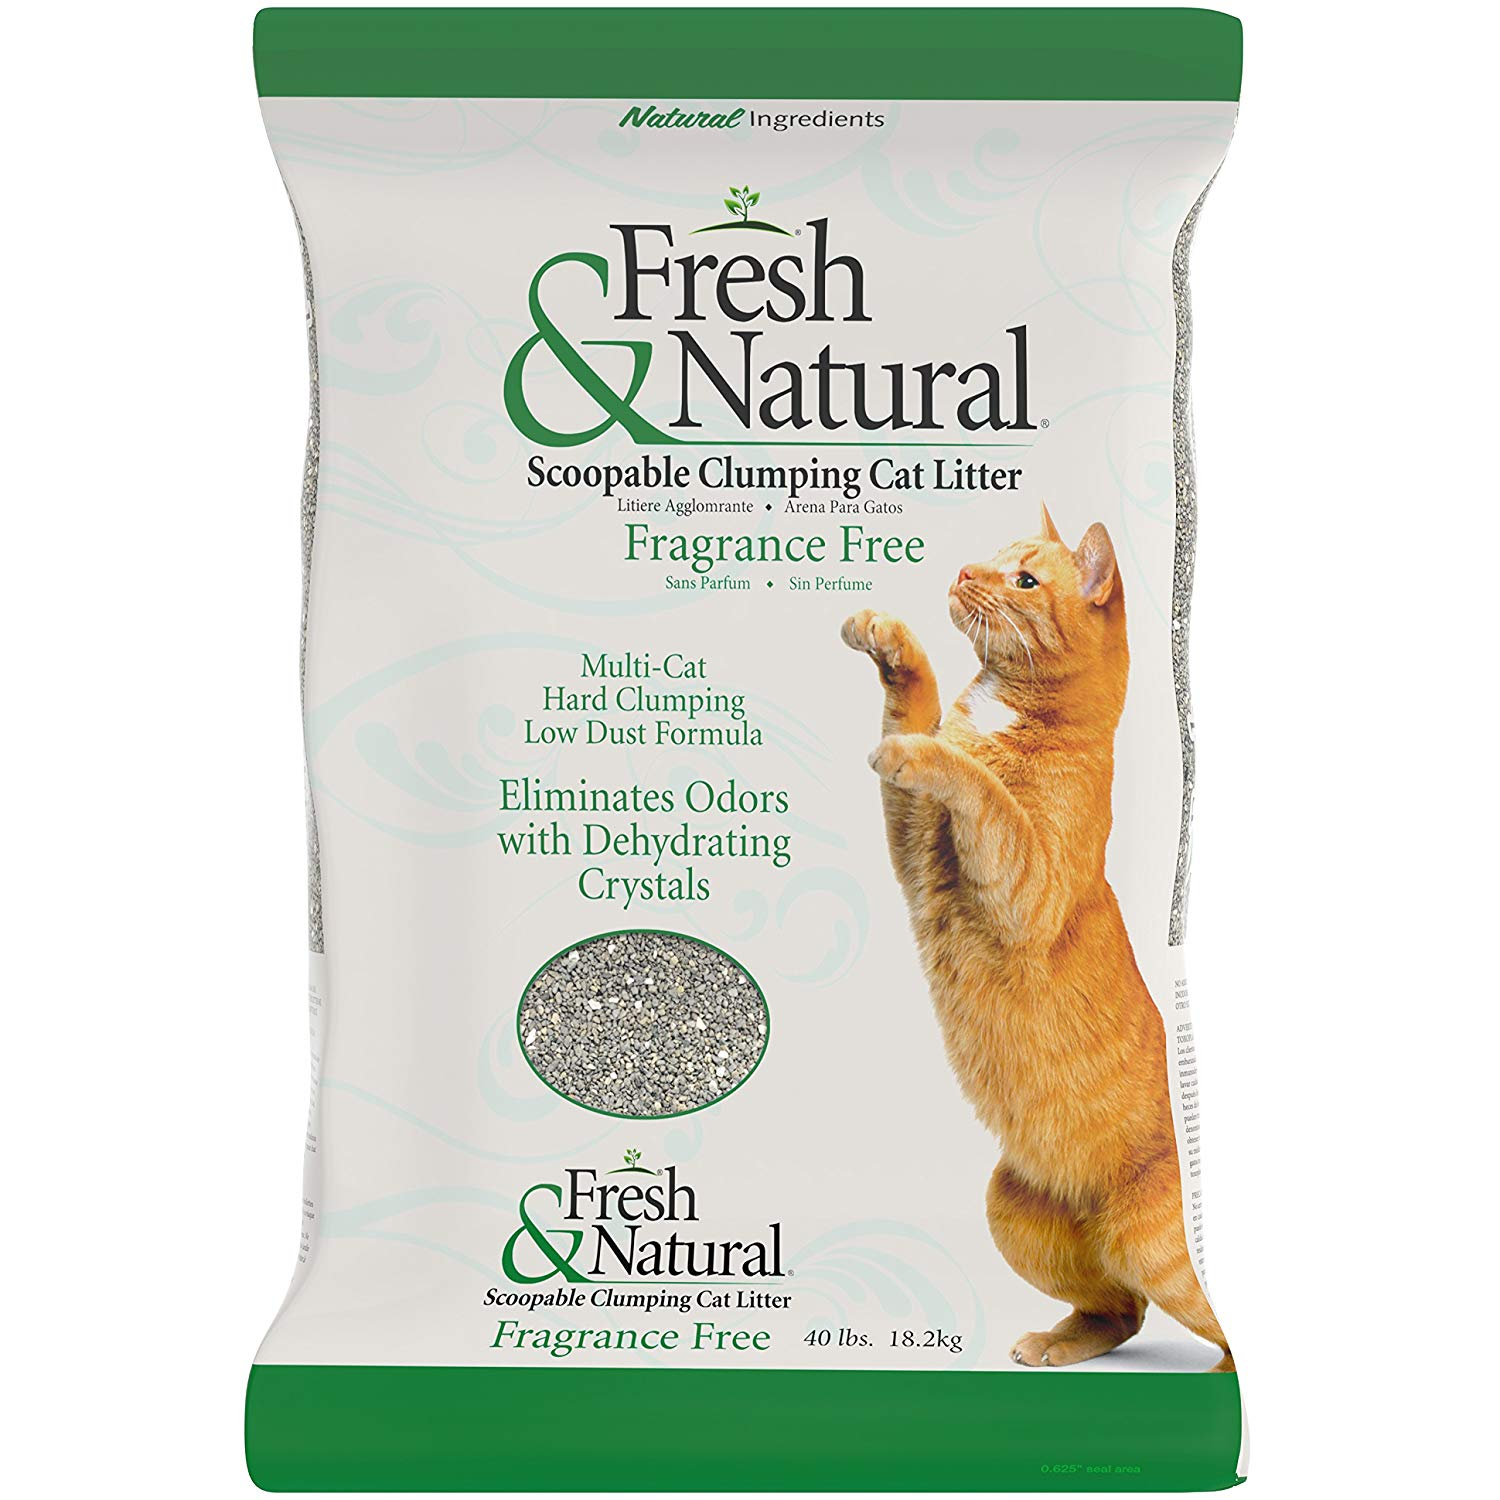 Fresh & Natural Fragrance Free Scoopable Clumping Cat Litter